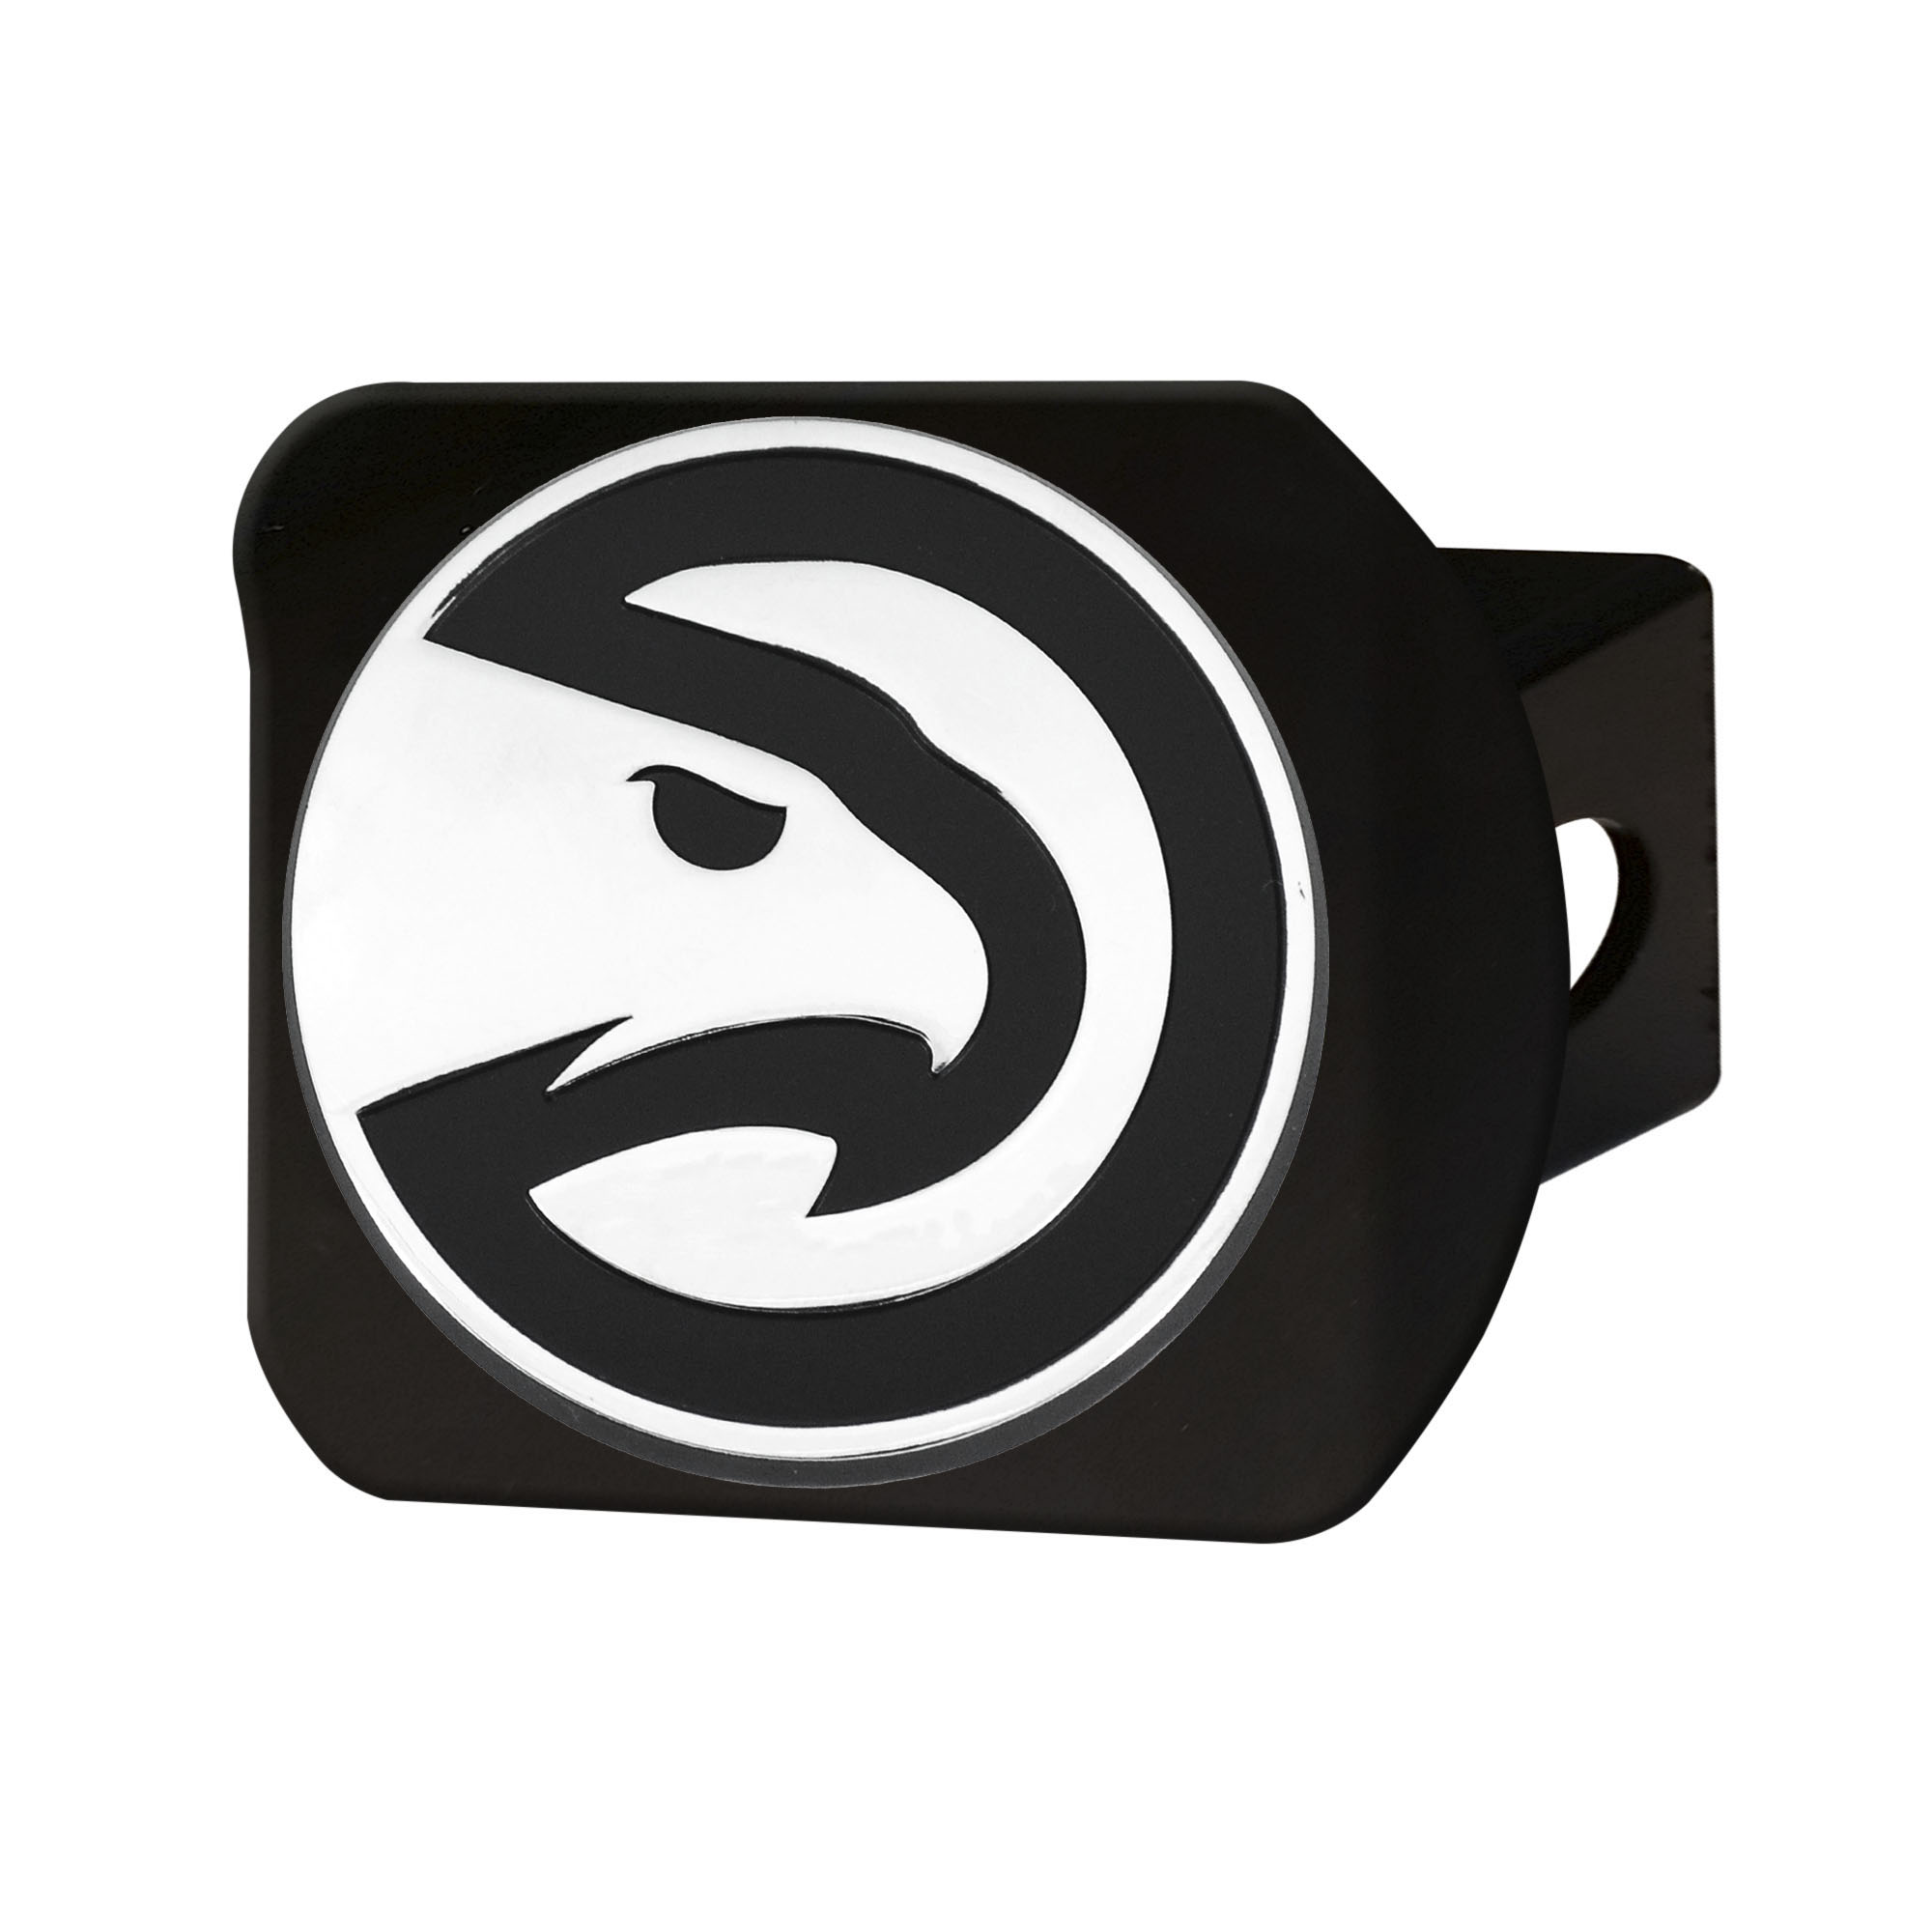 NBA Atlanta Hawks Black Hitch Cover Automotive Accessory